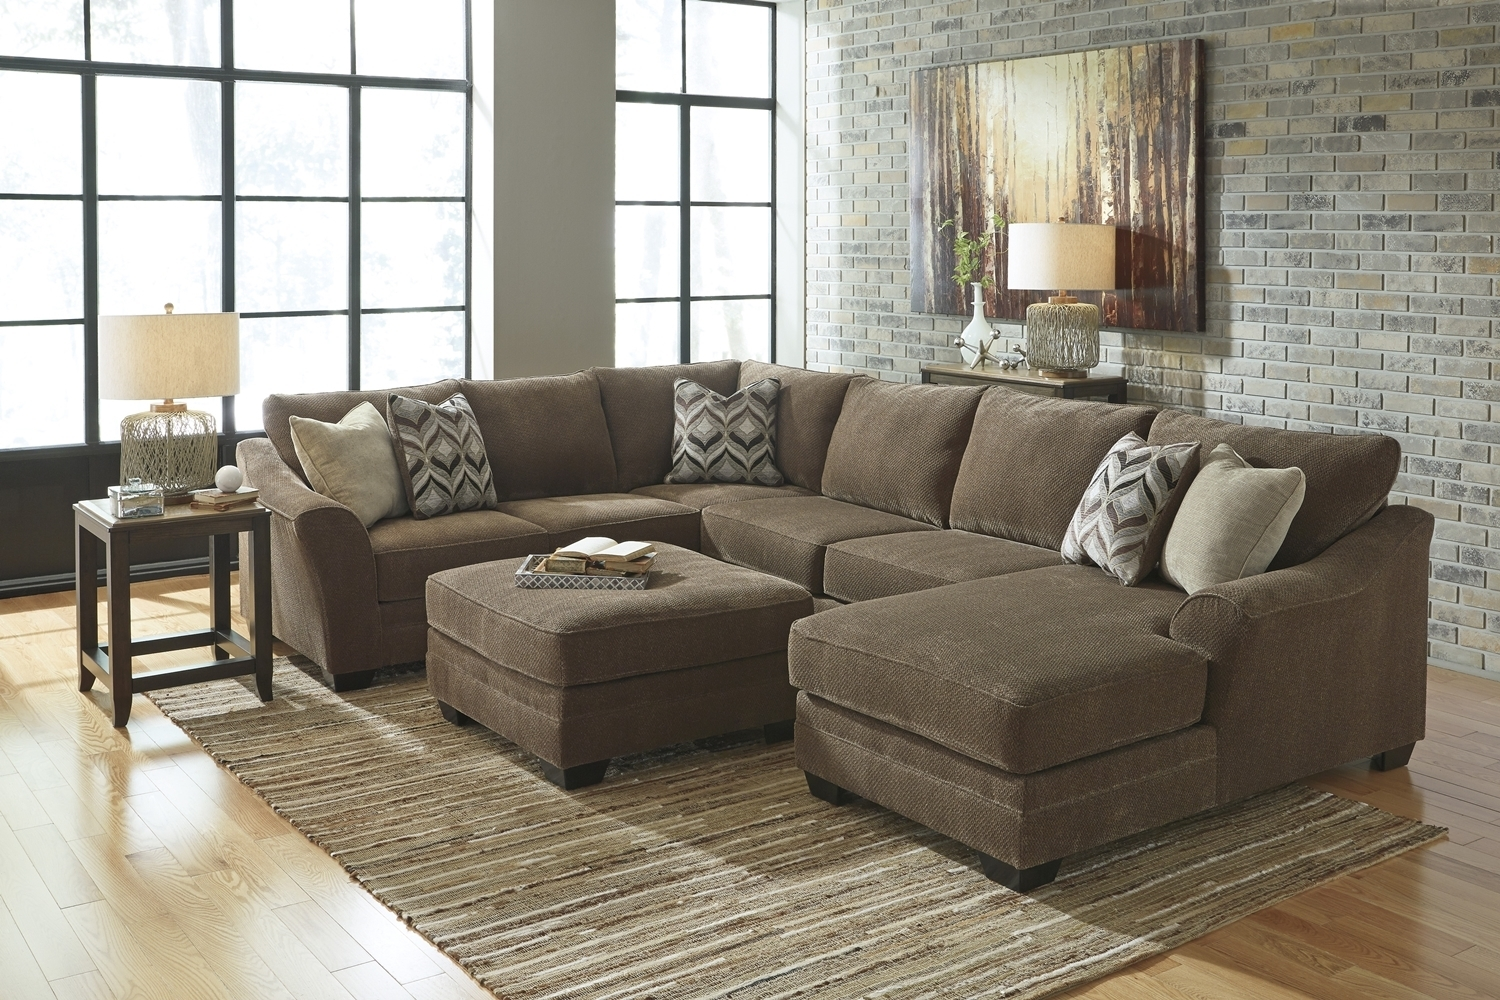 Leather & Fabric Sectional Sofas for Tatum Dark Grey 2 Piece Sectionals With Laf Chaise (Image 14 of 30)